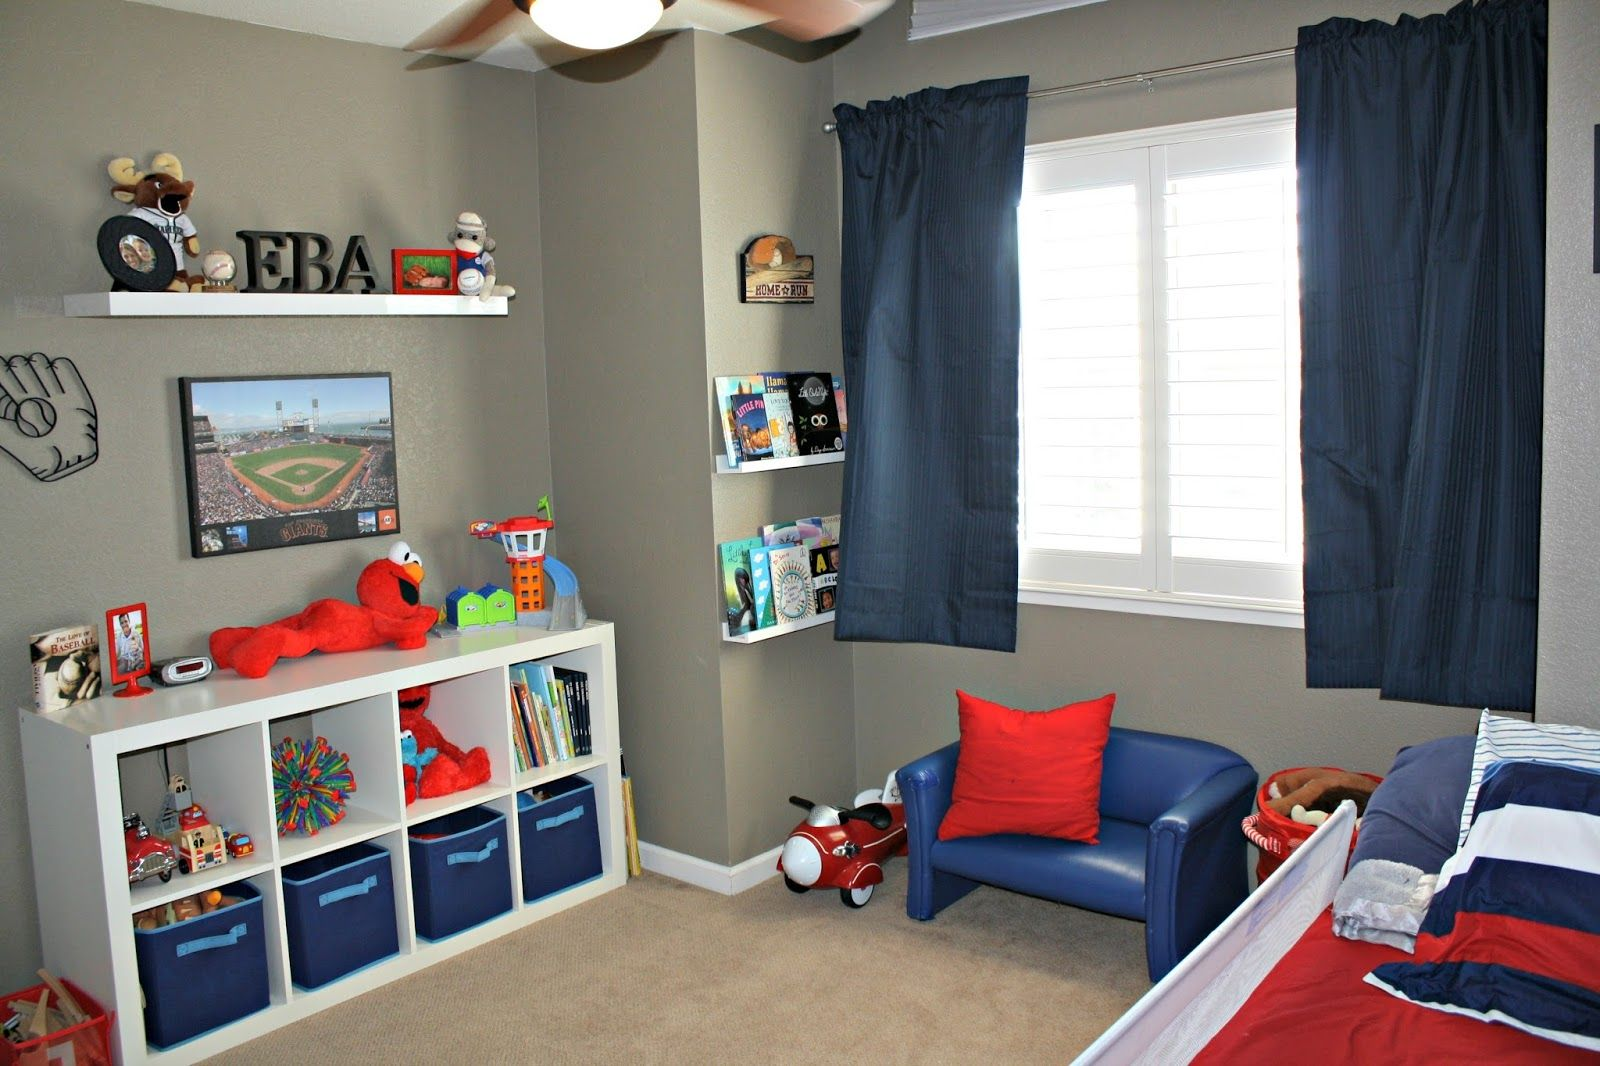 Boys Sports Room Modern And Rustic Home Design Ideas Toddler Boys Room Big Boy Bedrooms Big Boy Room